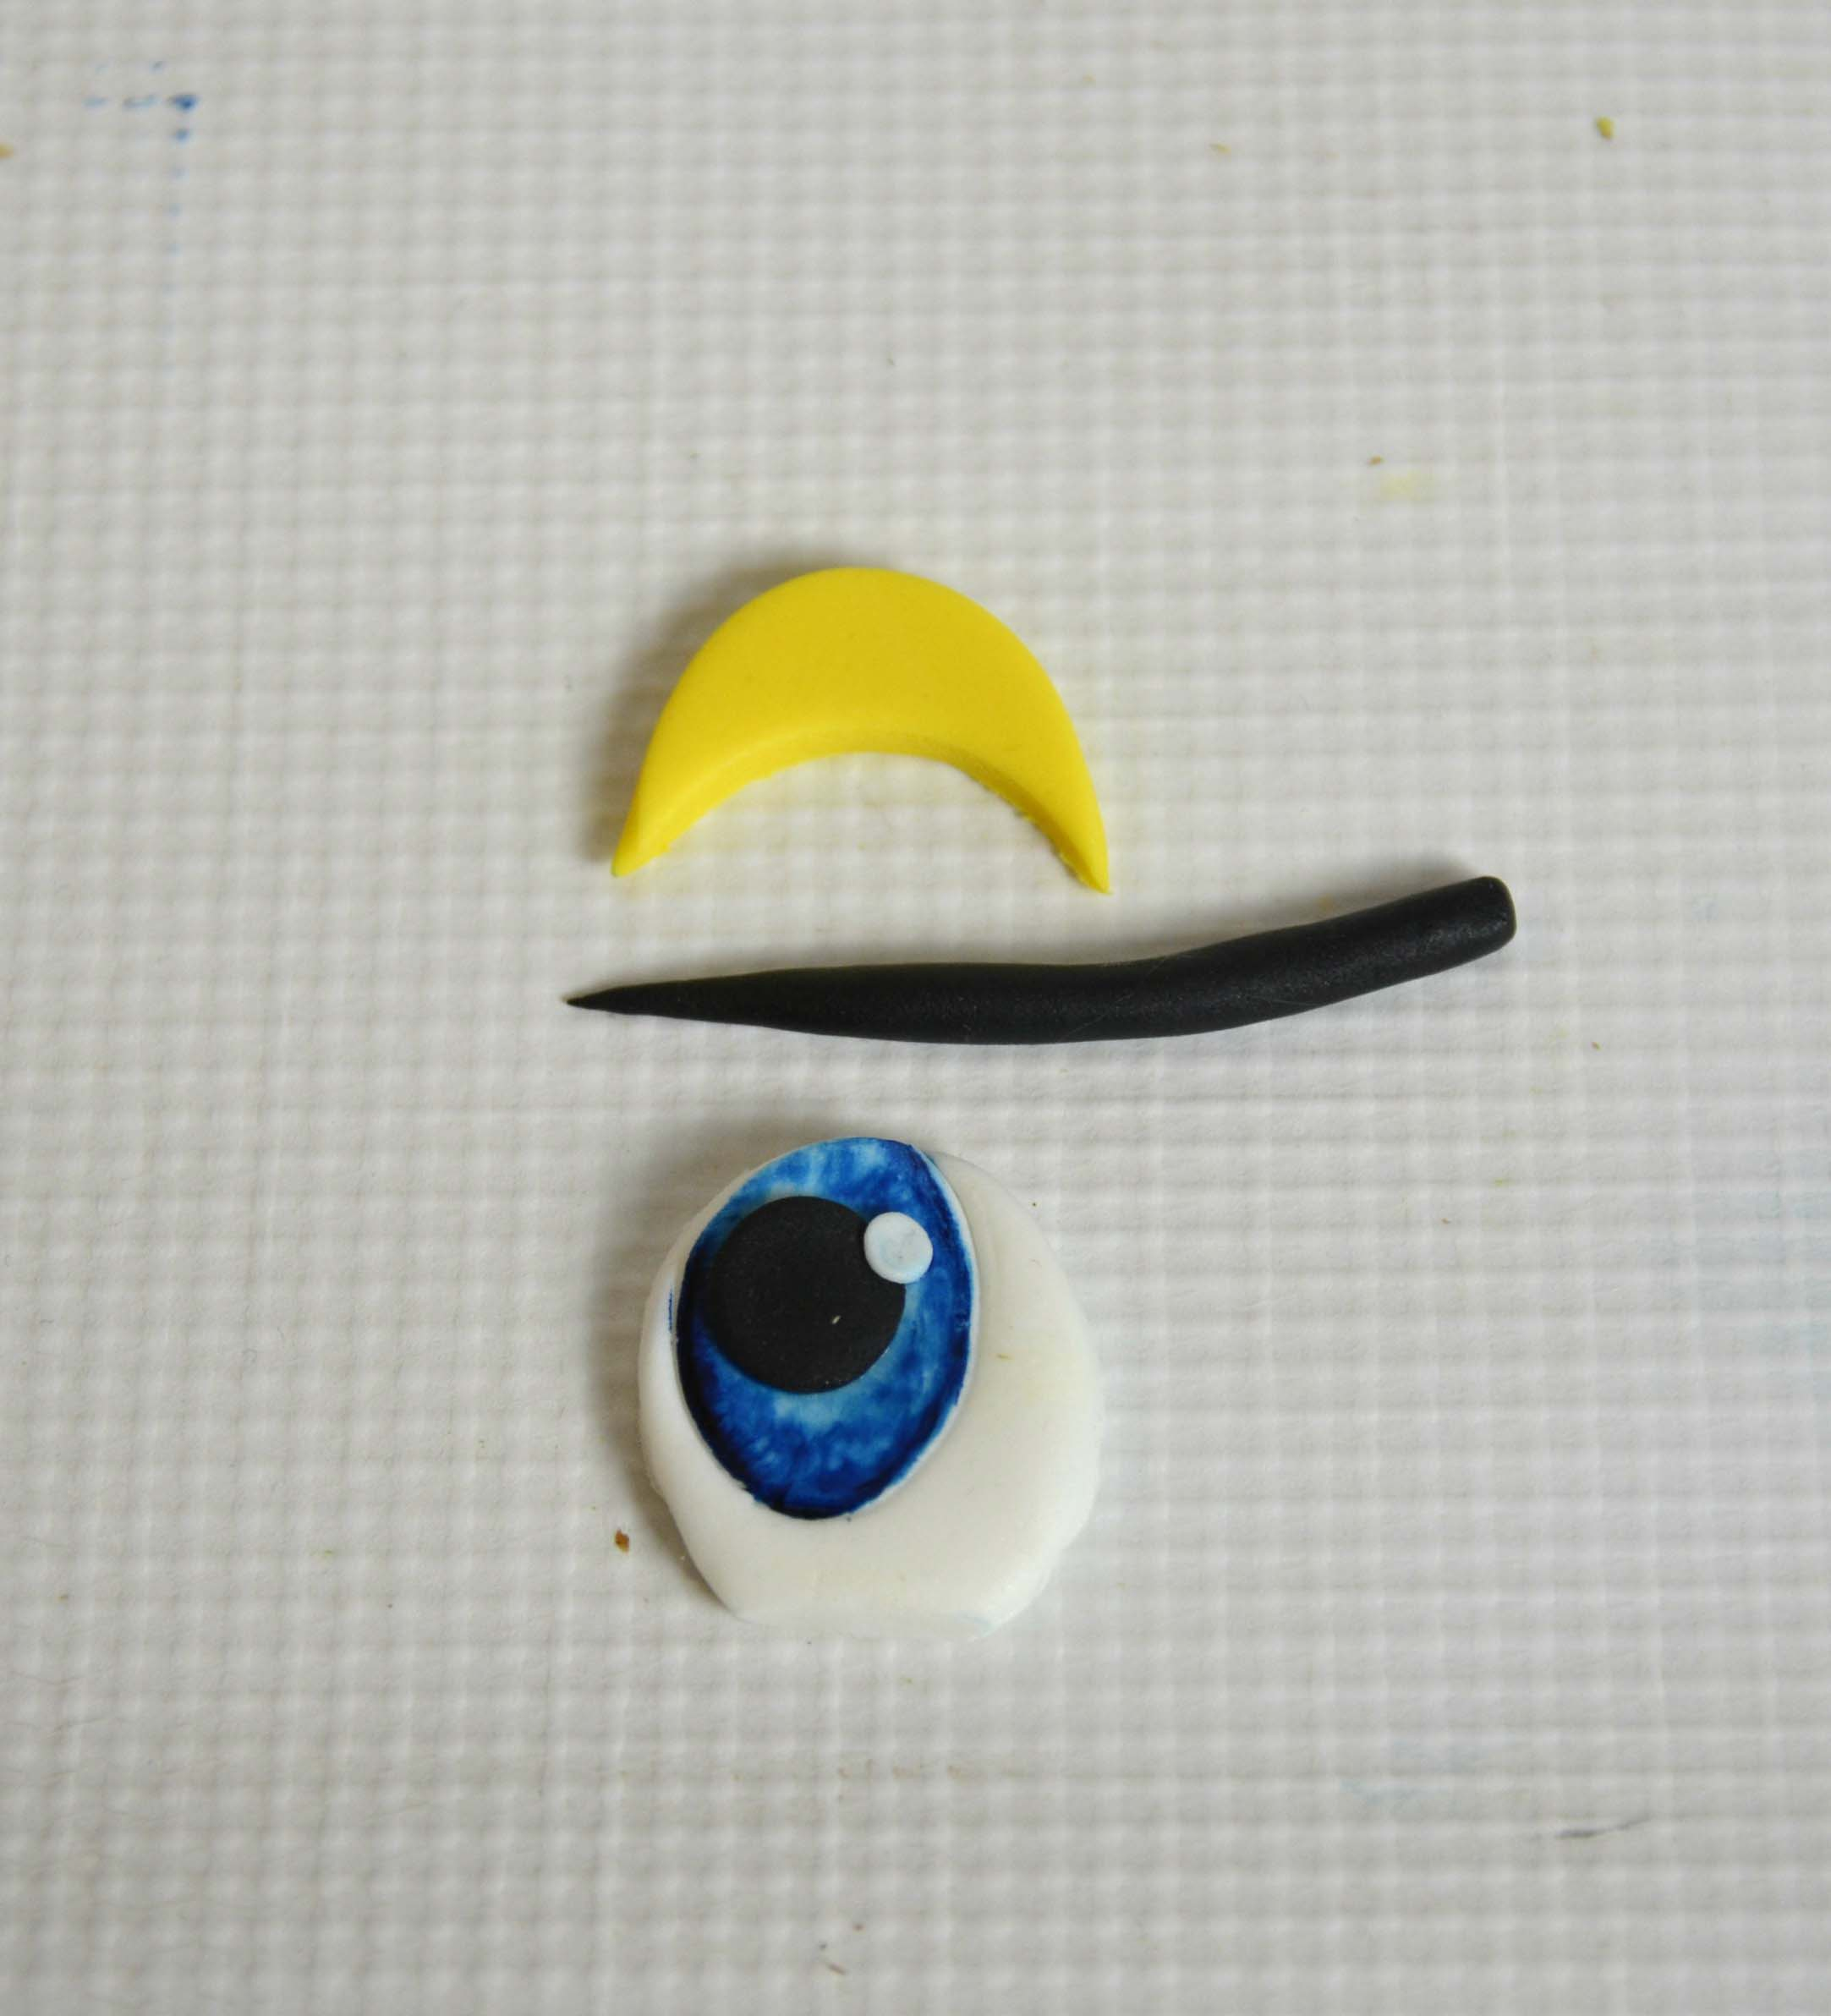 Easter chick eyes eyelashes and eyelids using yellow sugarpaste